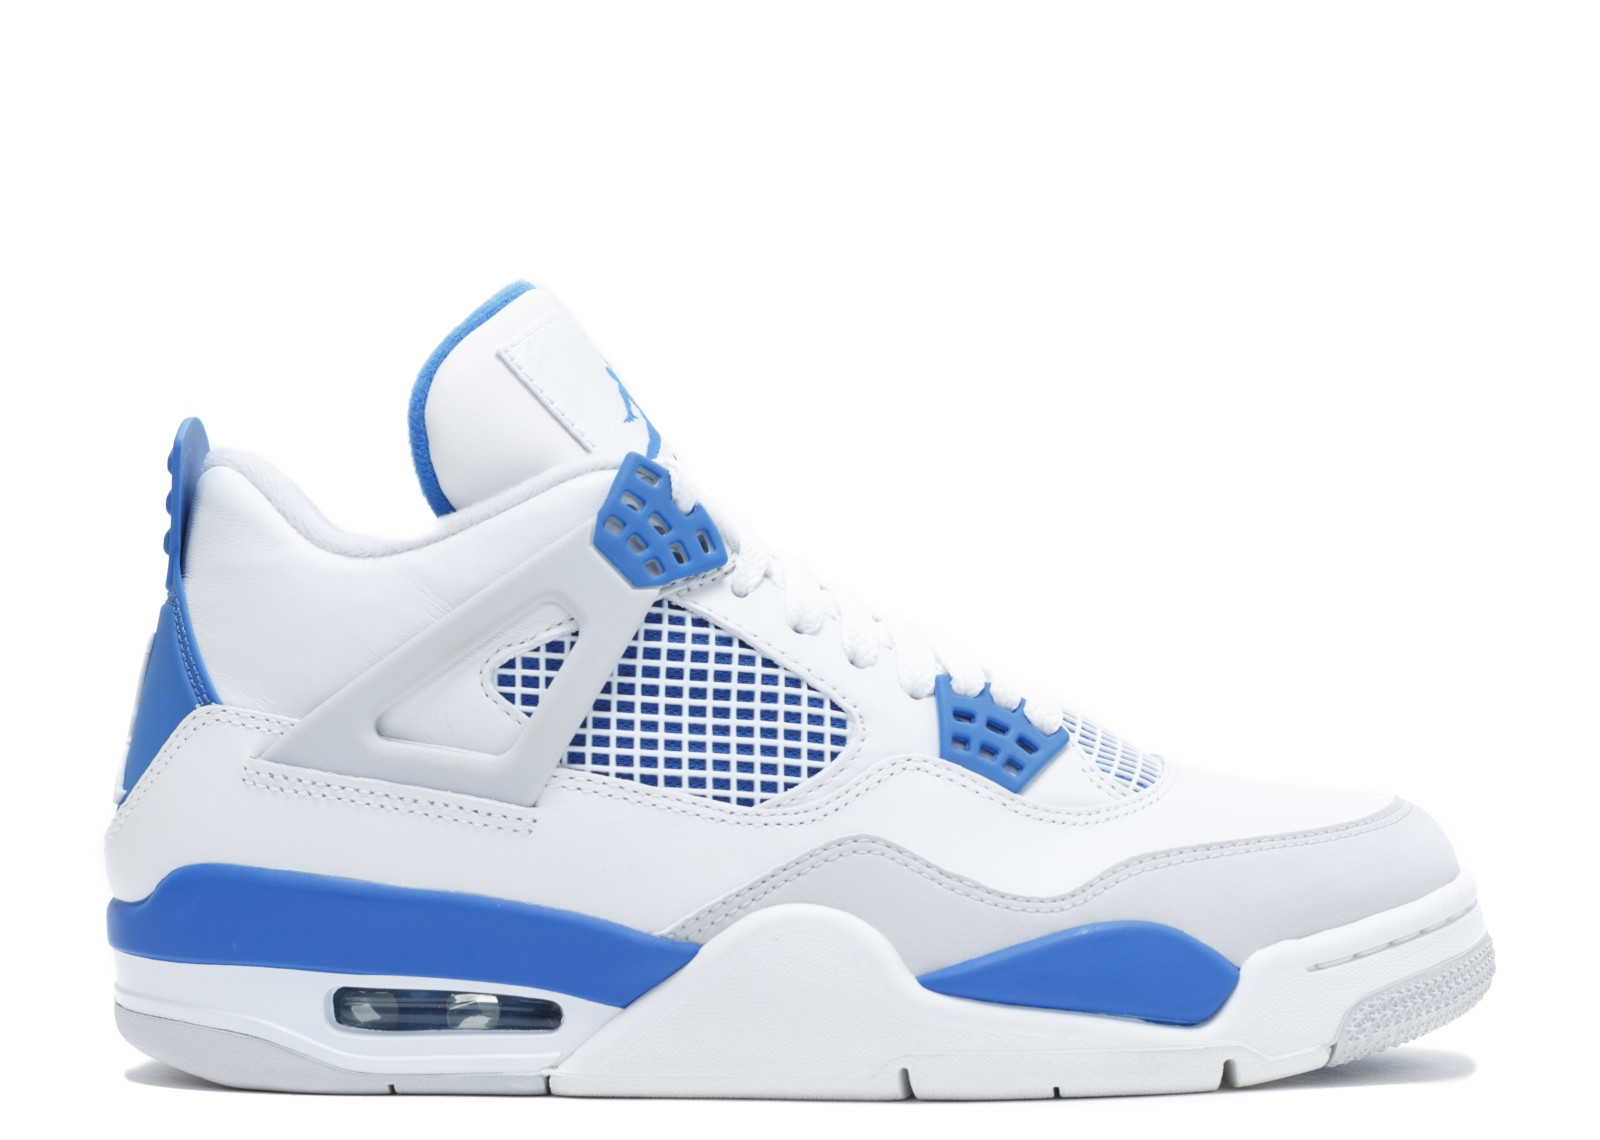 Air Jordan 4 Retro Military Blue 2012 Release